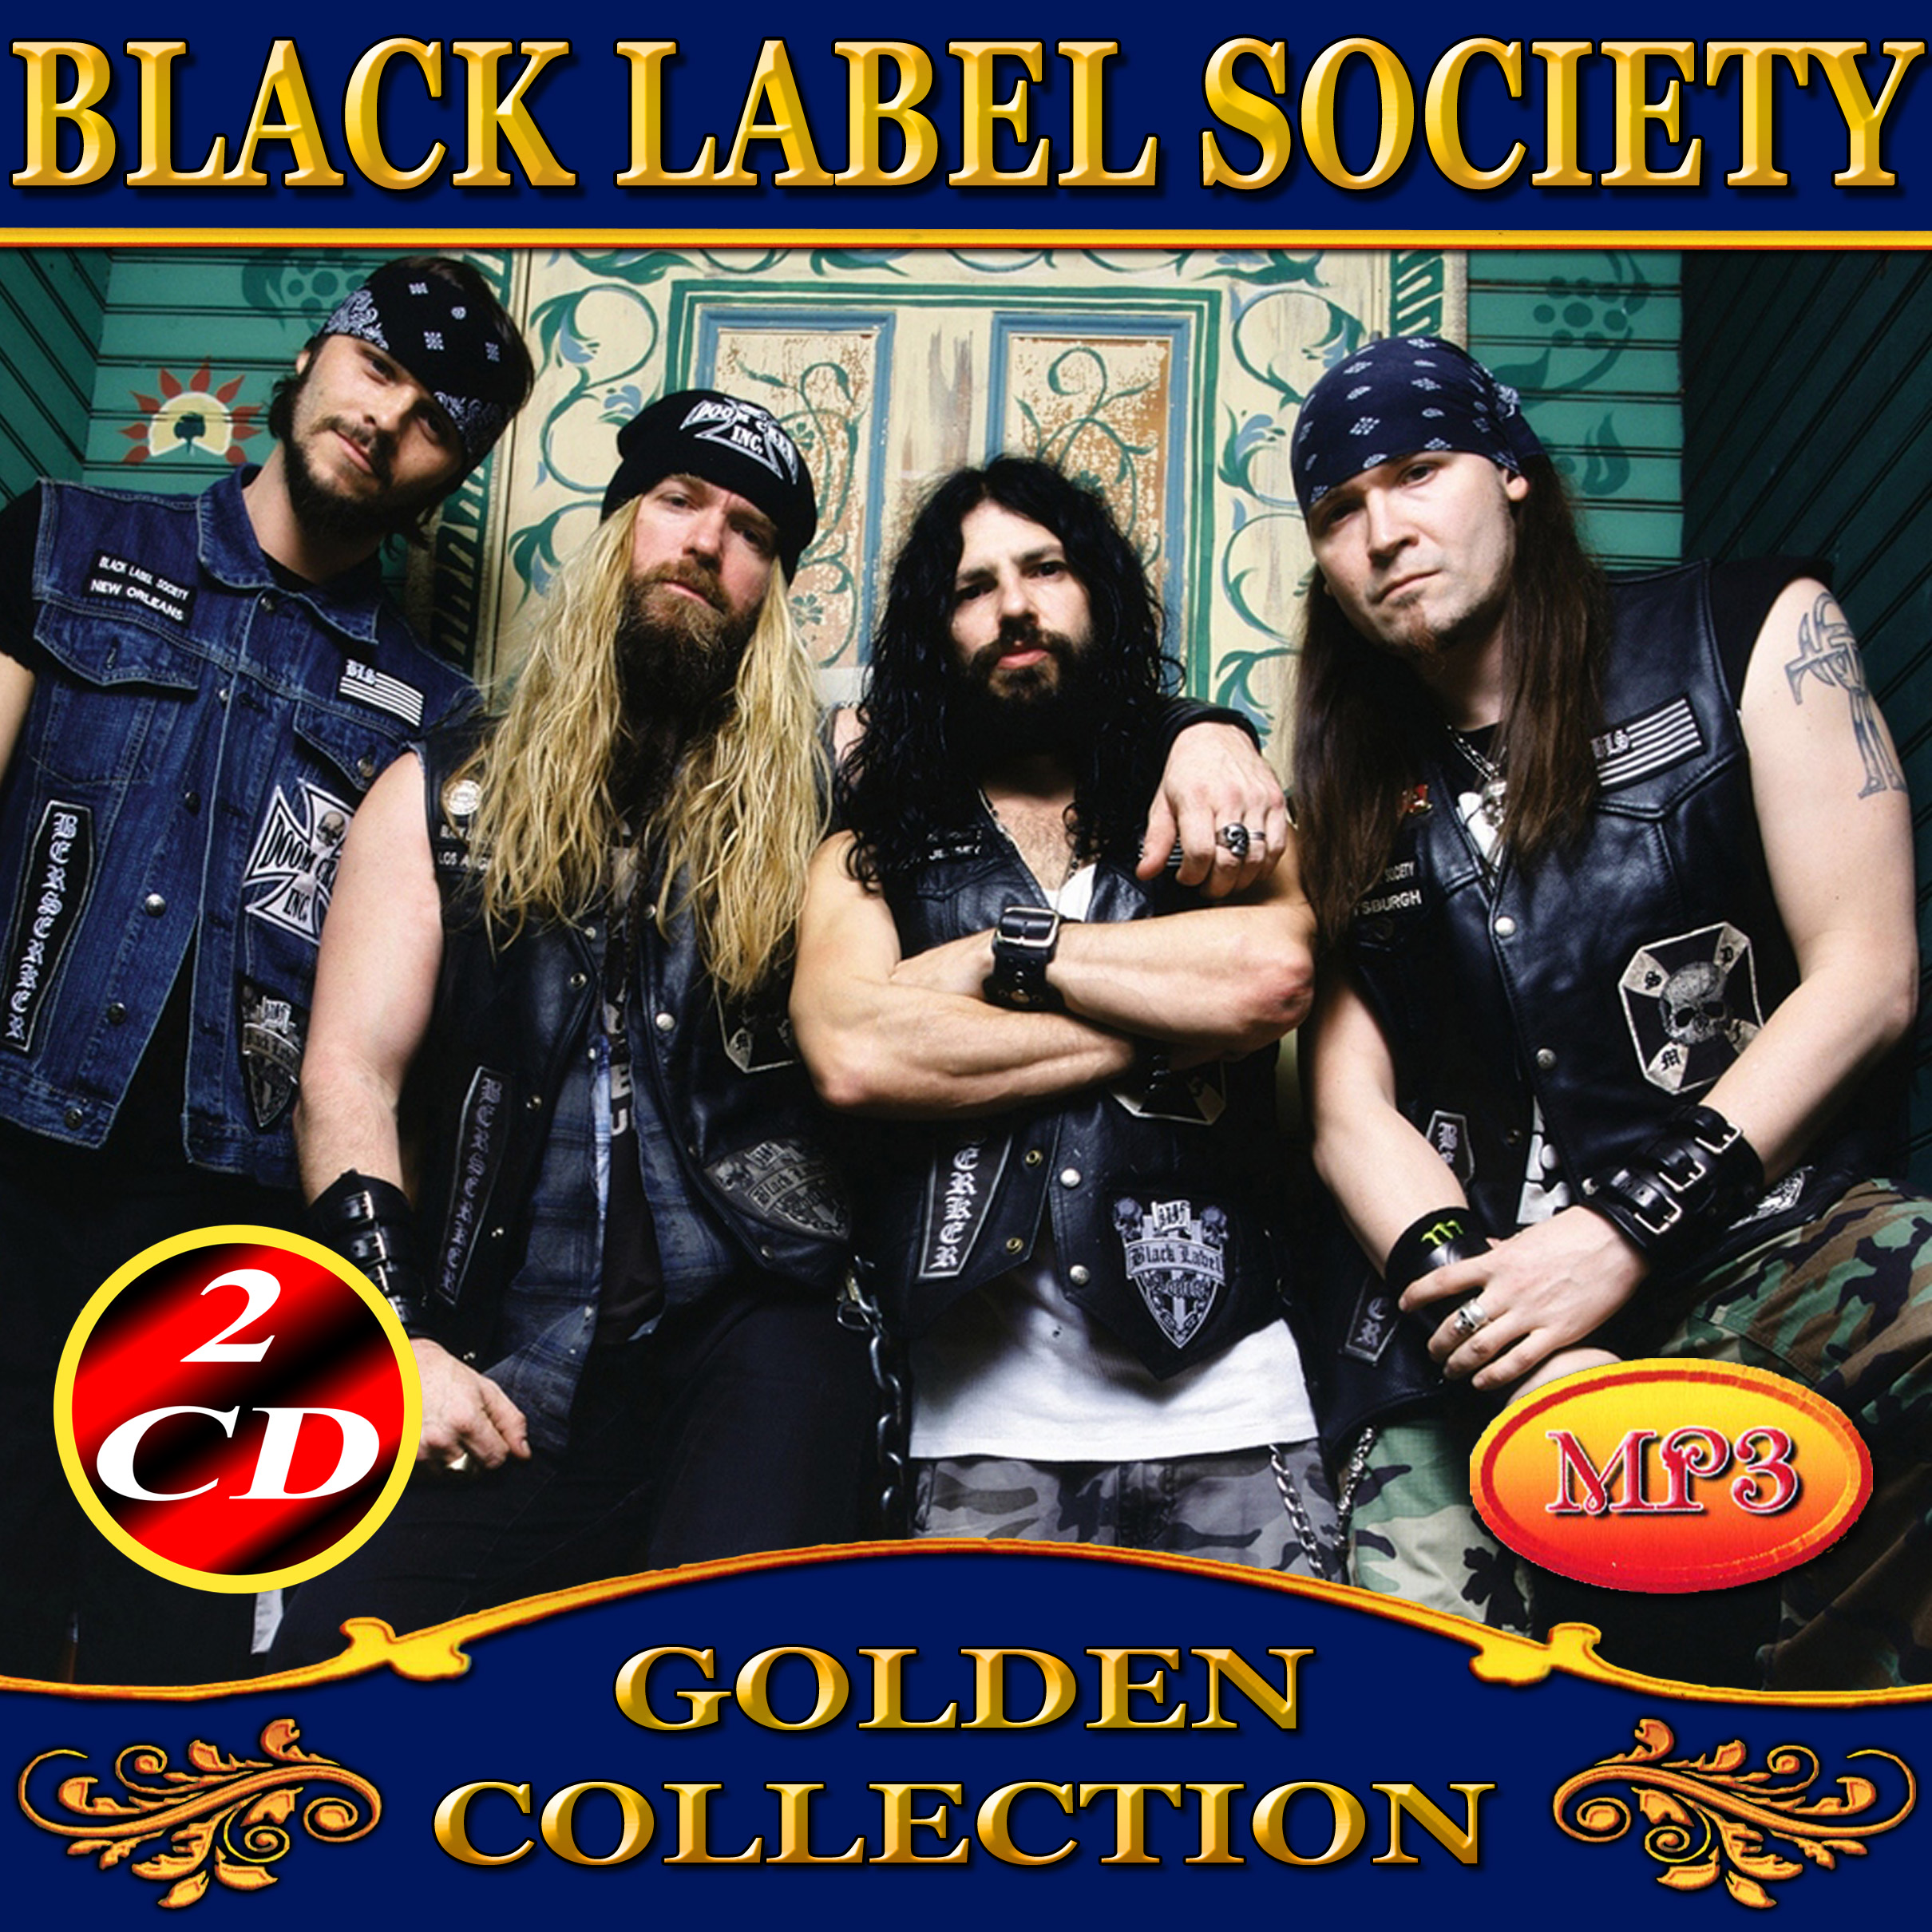 Black Label Society 2cd [mp3]